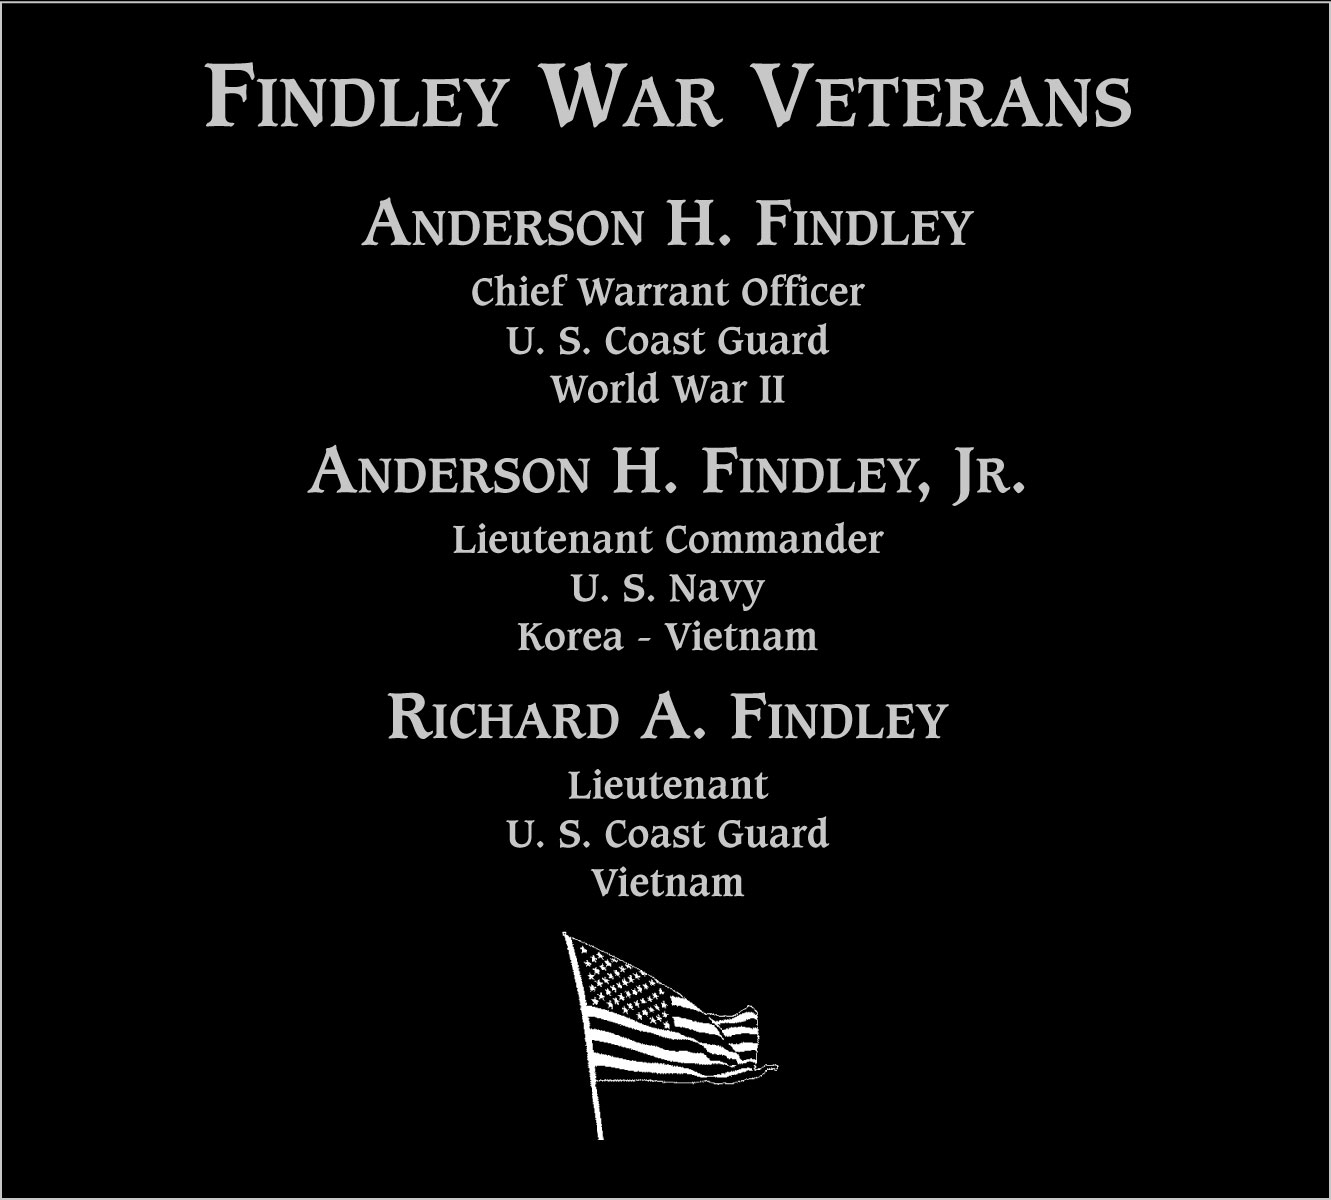 Richard A. Findley